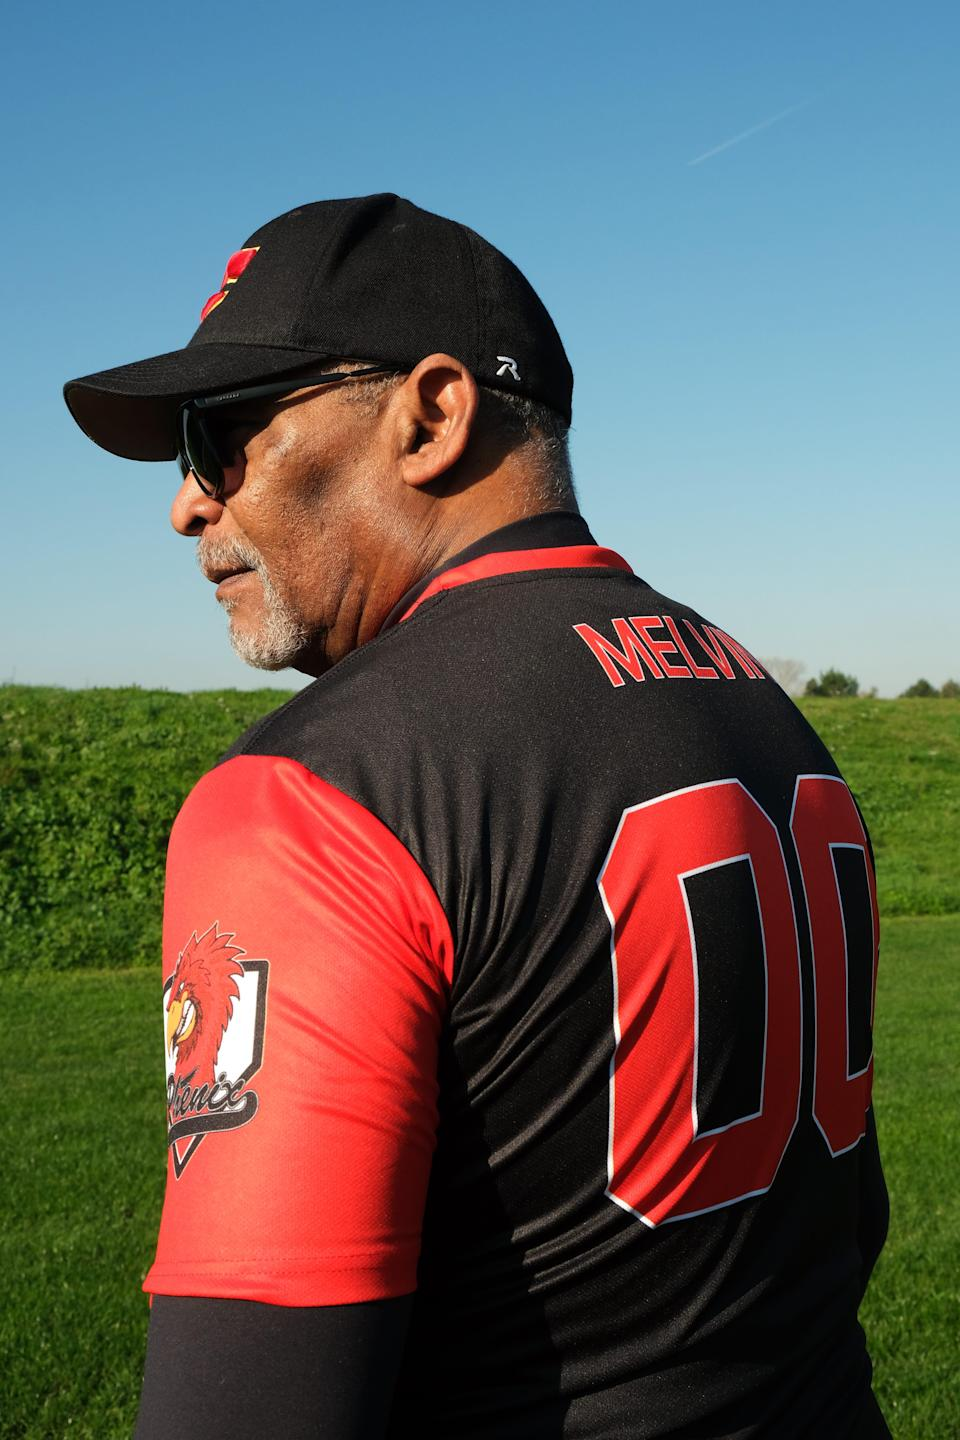 """In Caen, Melvin McNair is known as """"Mr. Baseball,"""" amentor who uses the game to teach life lessons to troubled French youth."""